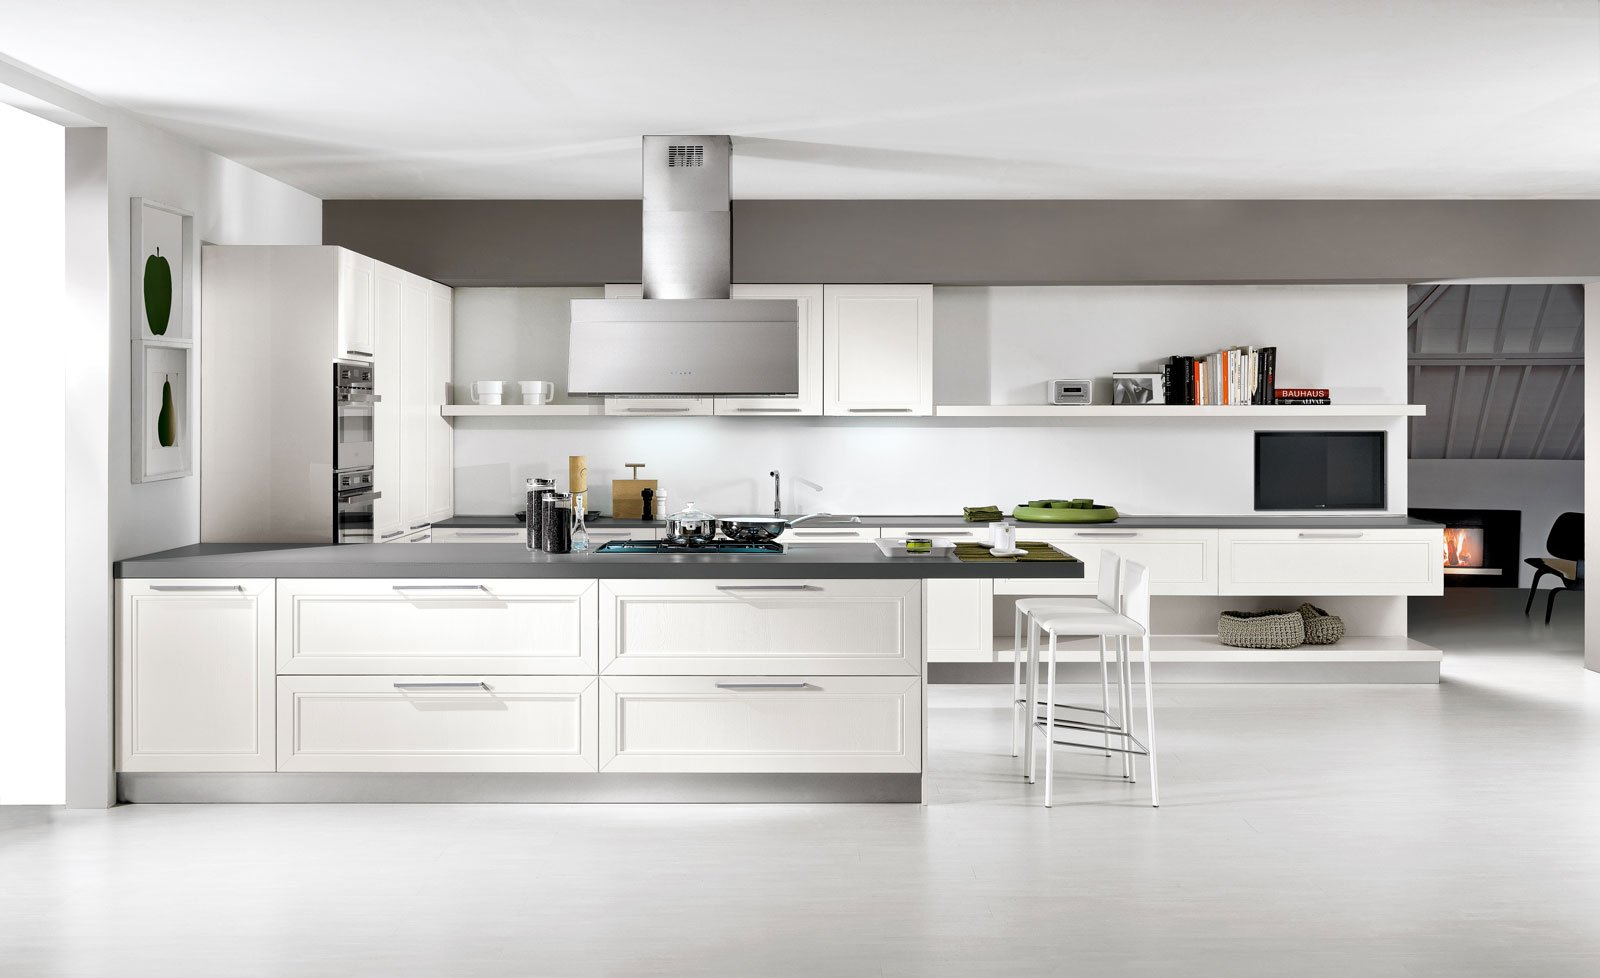 Best Listino Cucine Scavolini Gallery - Ideas & Design 2017 ...